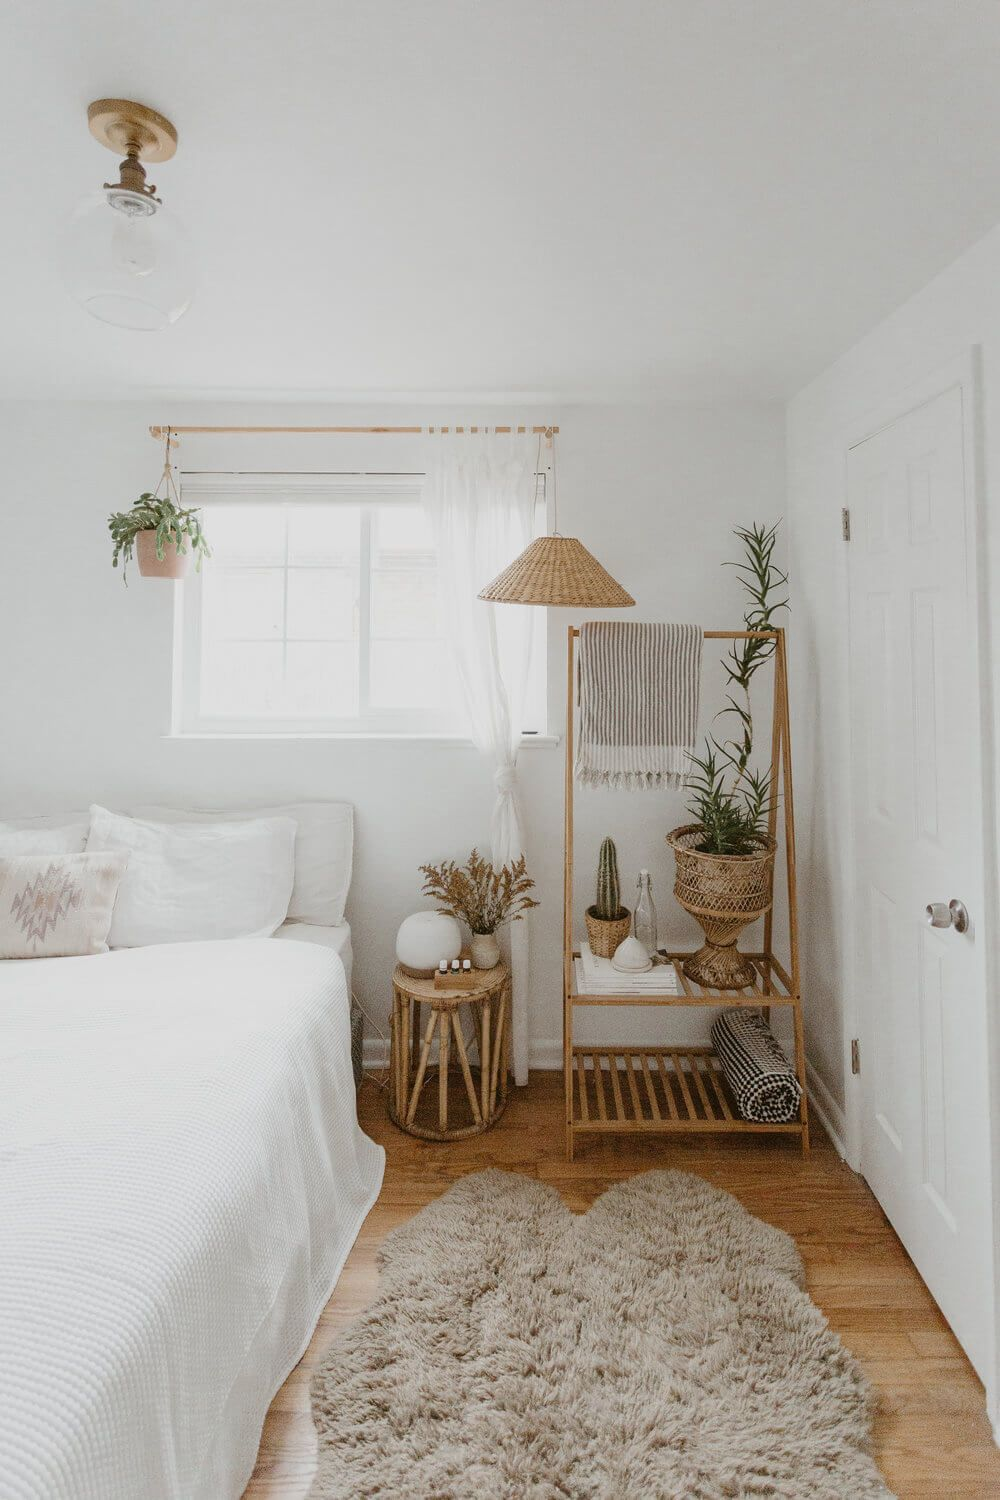 10 Simple and Beautiful Natural Home Decor Ideas for Every Room in